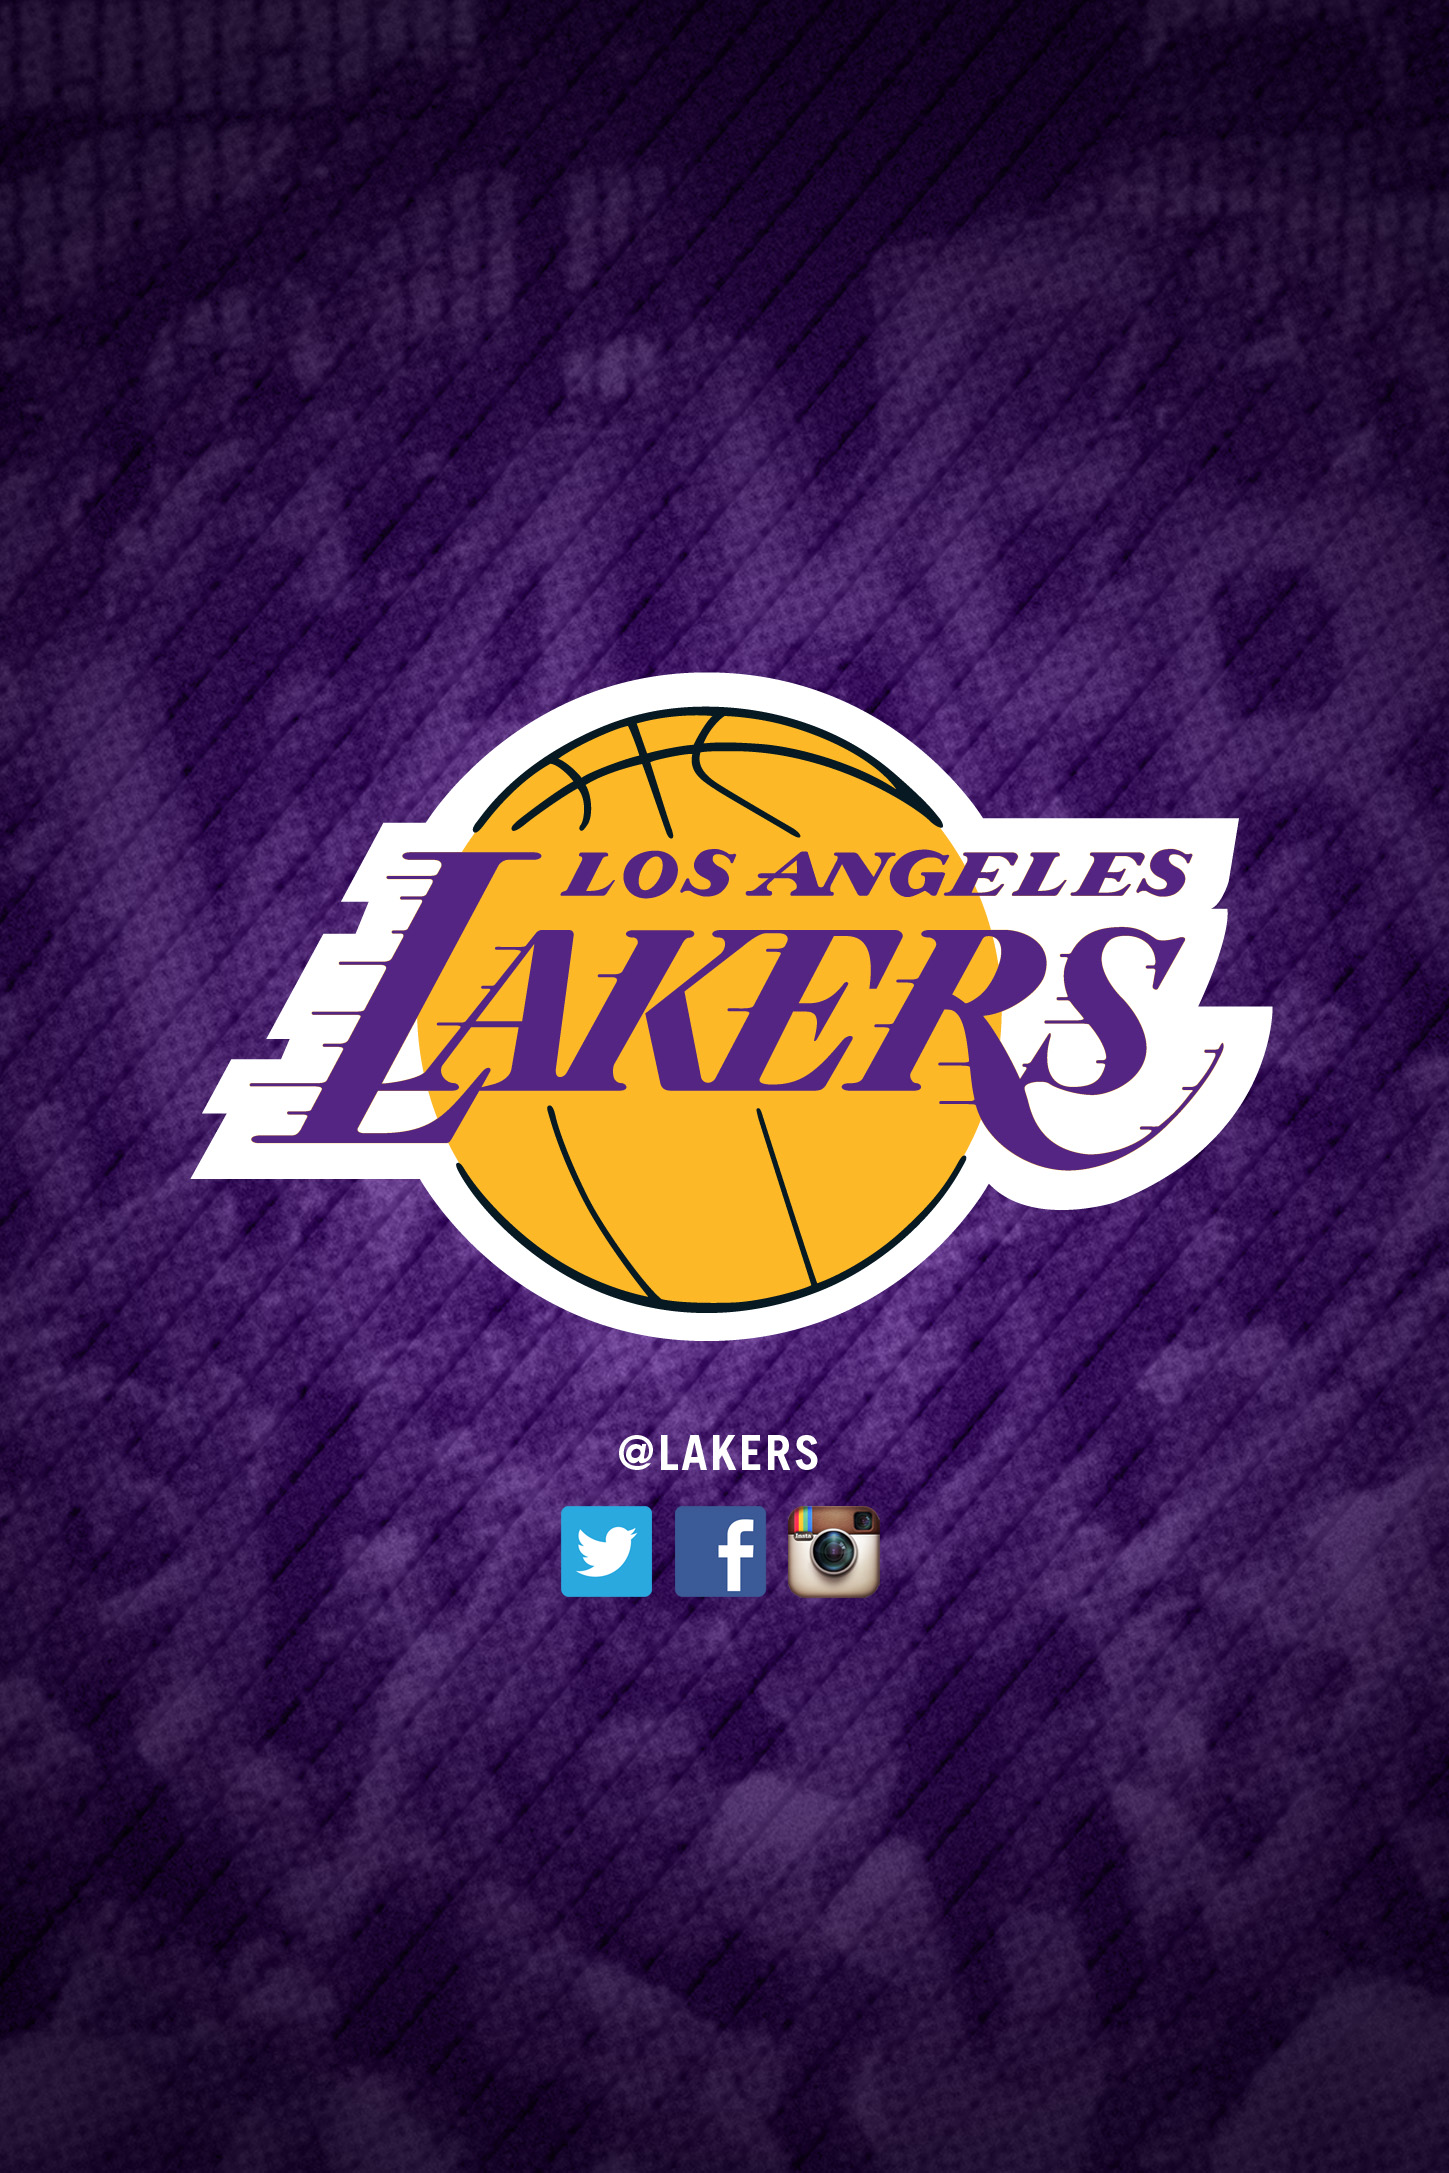 pics photos lakers - photo #1